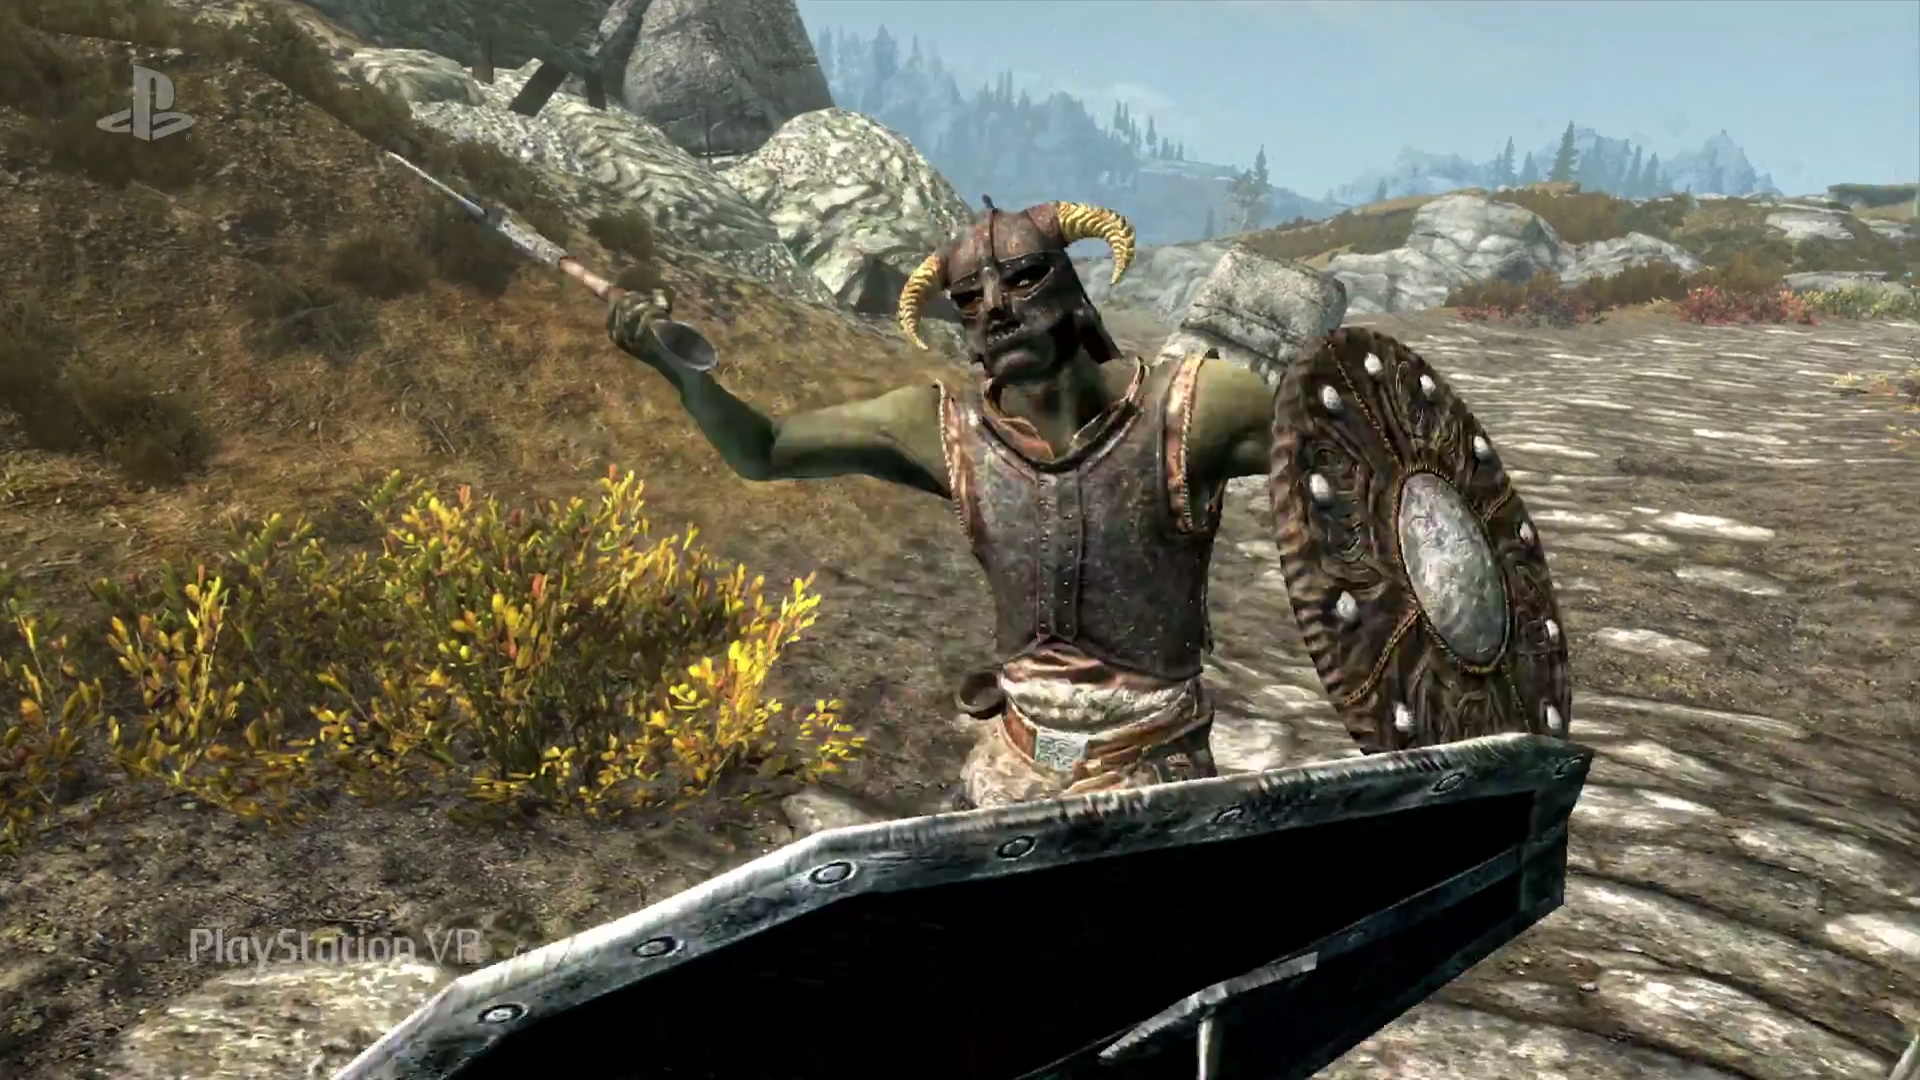 Skyrim VR for PS4 gets big update to improve graphics and